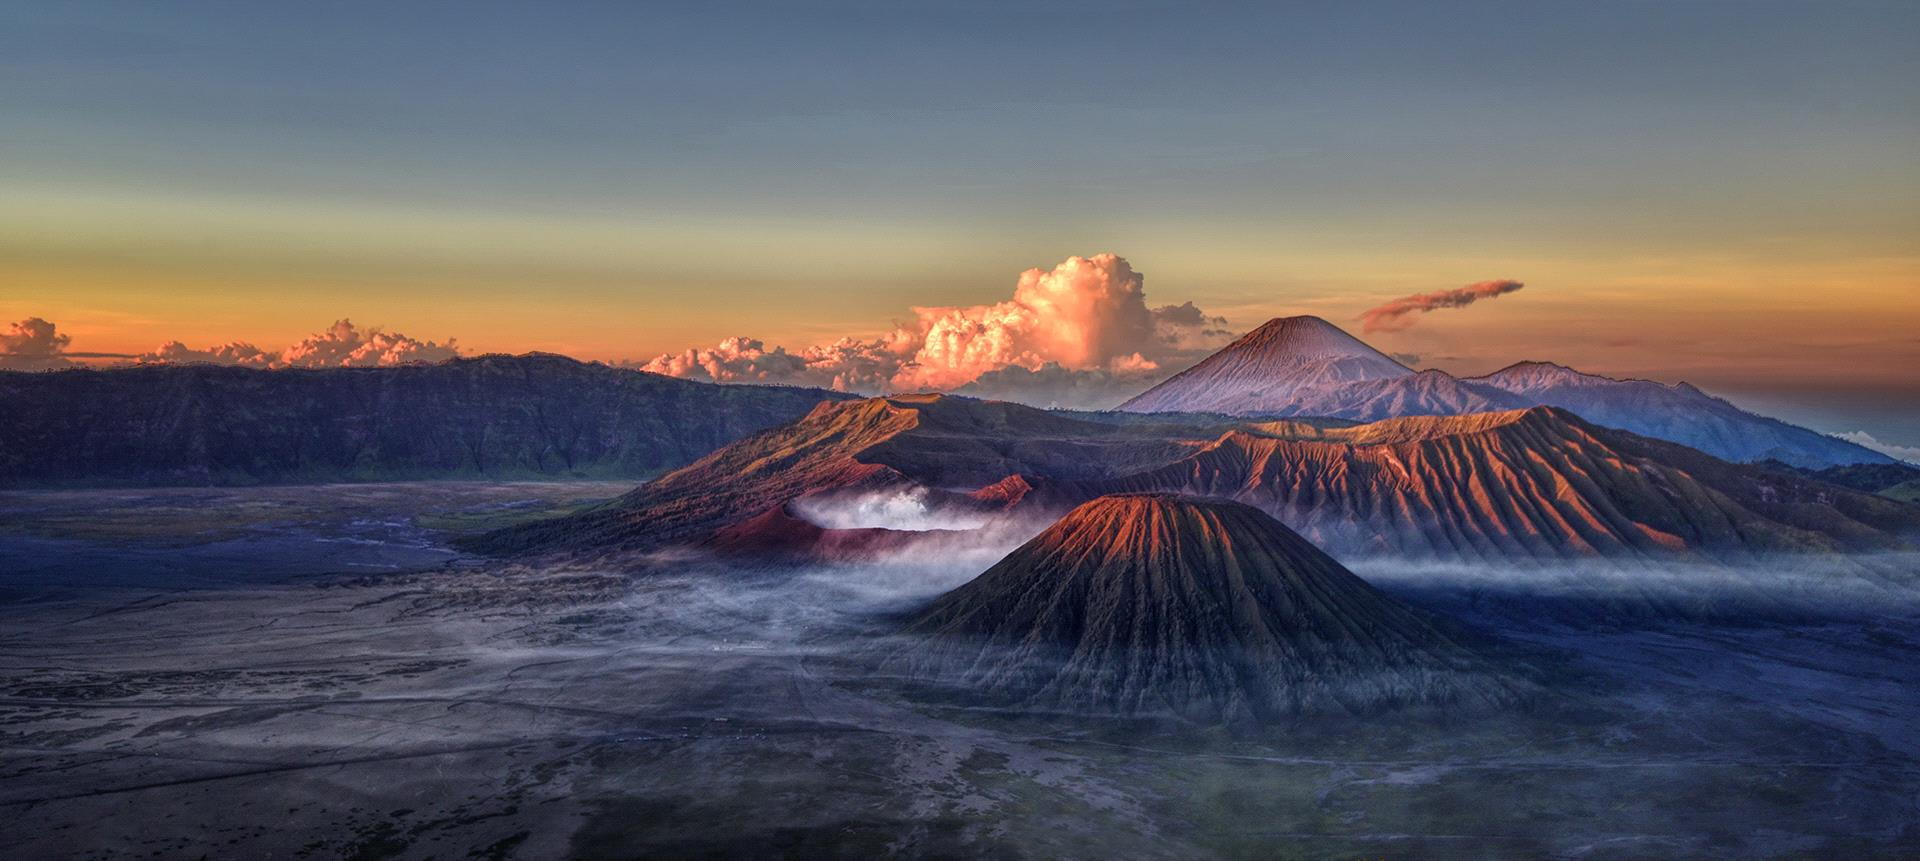 Certificate of Commendation - Lee Eng Tan (Singapore) - Mt Bromo Morning